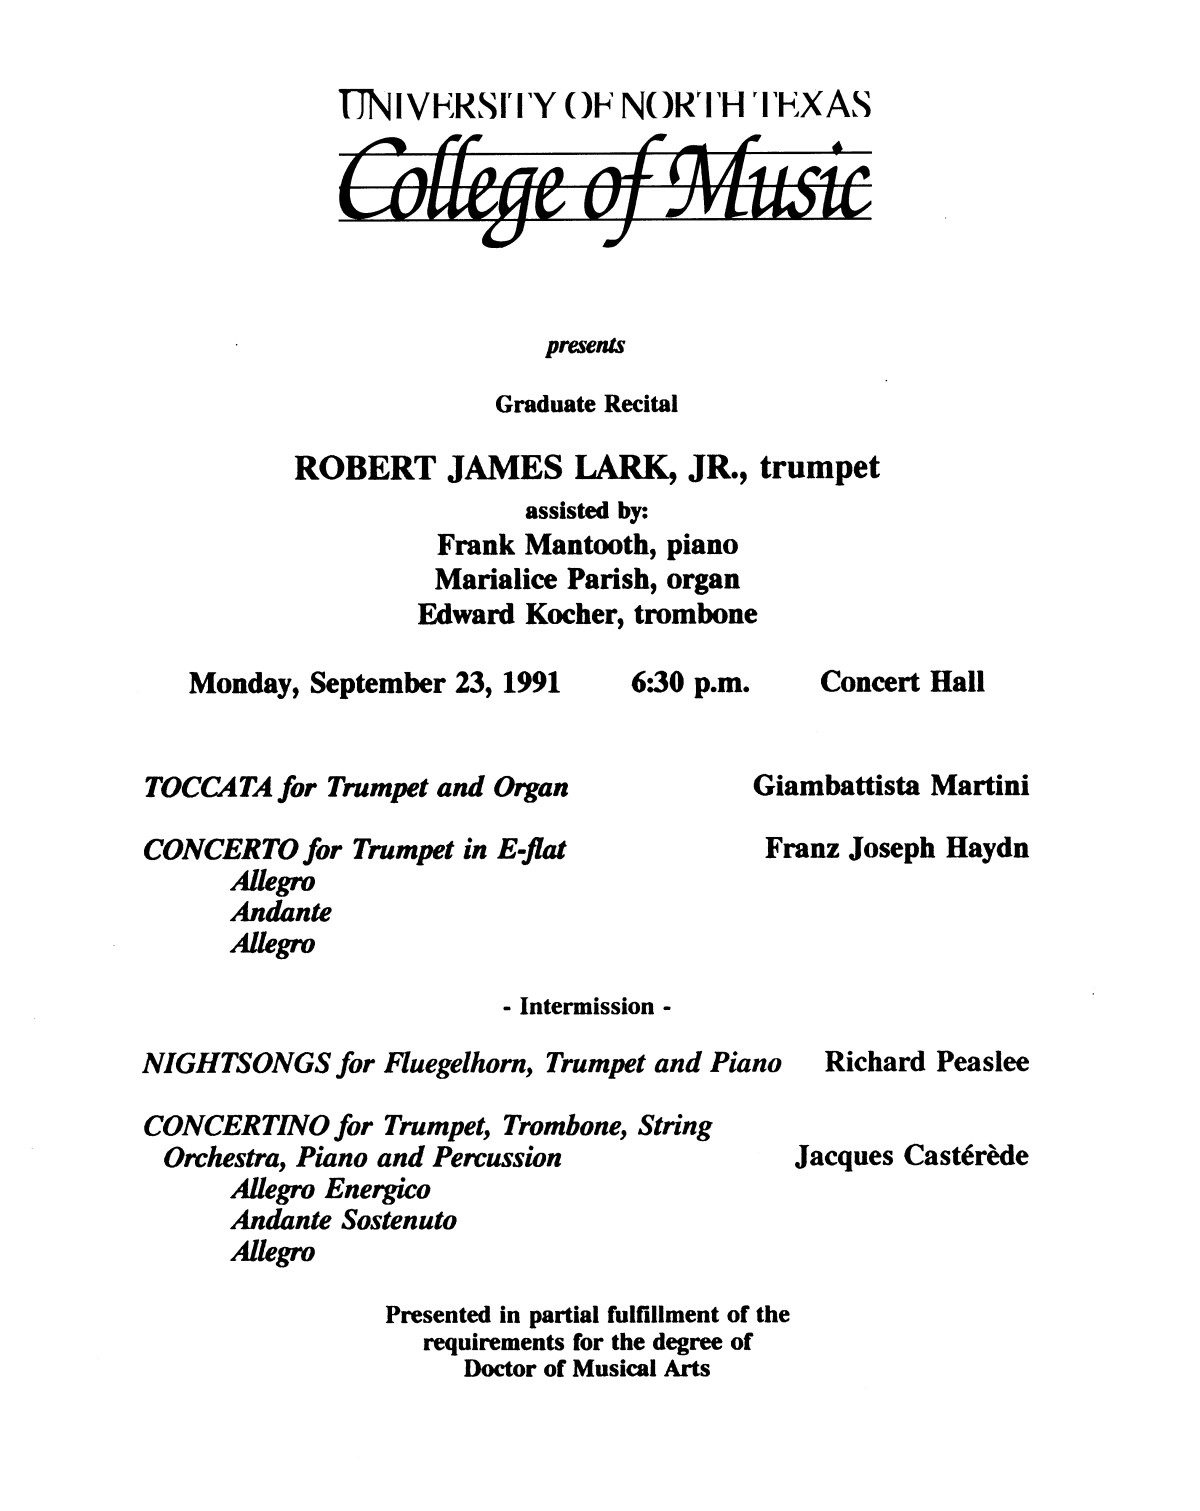 College of Music program book 1991-1992 Student Performances Vol. 2                                                                                                      [Sequence #]: 10 of 310